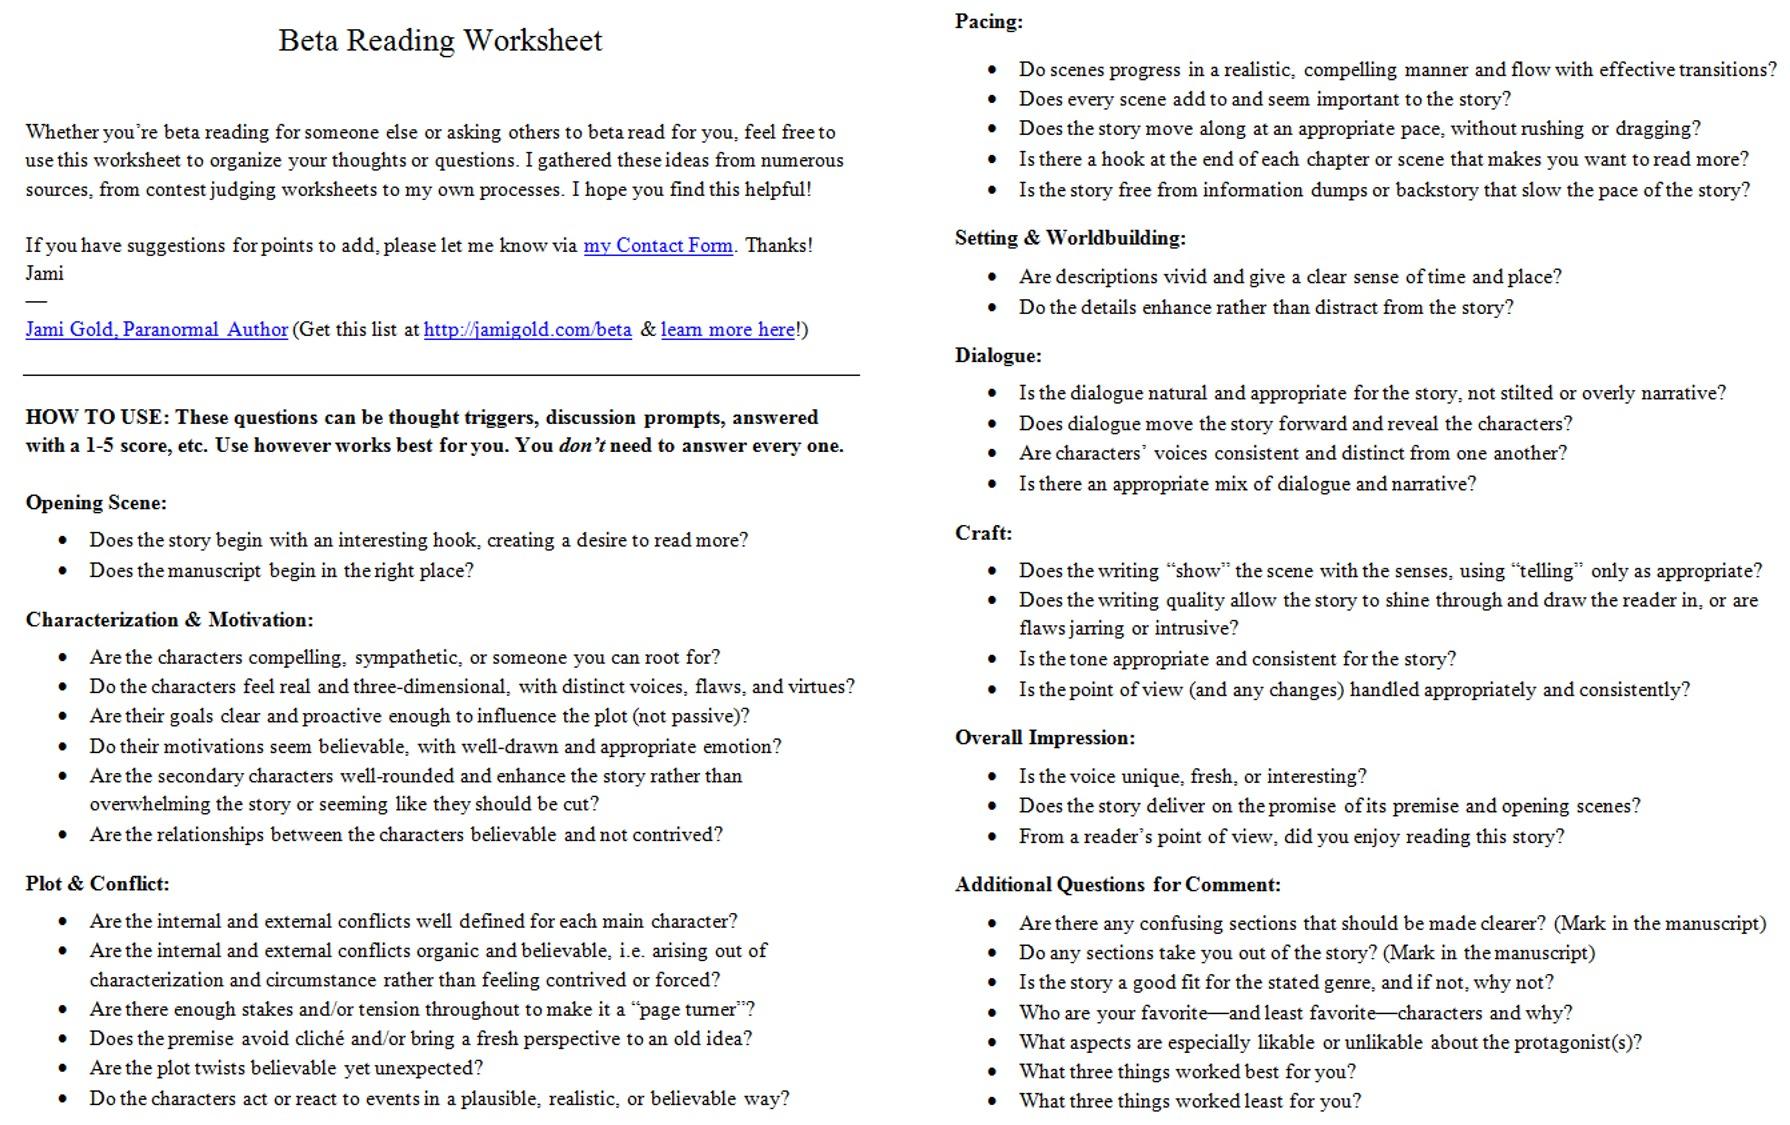 Aldiablosus  Marvelous Worksheets For Writers  Jami Gold Paranormal Author With Lovable Screen Shot Of The Twopage Beta Reading Worksheet With Delectable Stages Of Change Worksheets Also Photosynthesis Respiration Worksheet In Addition Kindergarten Word Worksheets And  Multiplication Worksheet As Well As Earth Science Worksheet Additionally Stoichiometry Worksheet Molemole From Jamigoldcom With Aldiablosus  Lovable Worksheets For Writers  Jami Gold Paranormal Author With Delectable Screen Shot Of The Twopage Beta Reading Worksheet And Marvelous Stages Of Change Worksheets Also Photosynthesis Respiration Worksheet In Addition Kindergarten Word Worksheets From Jamigoldcom